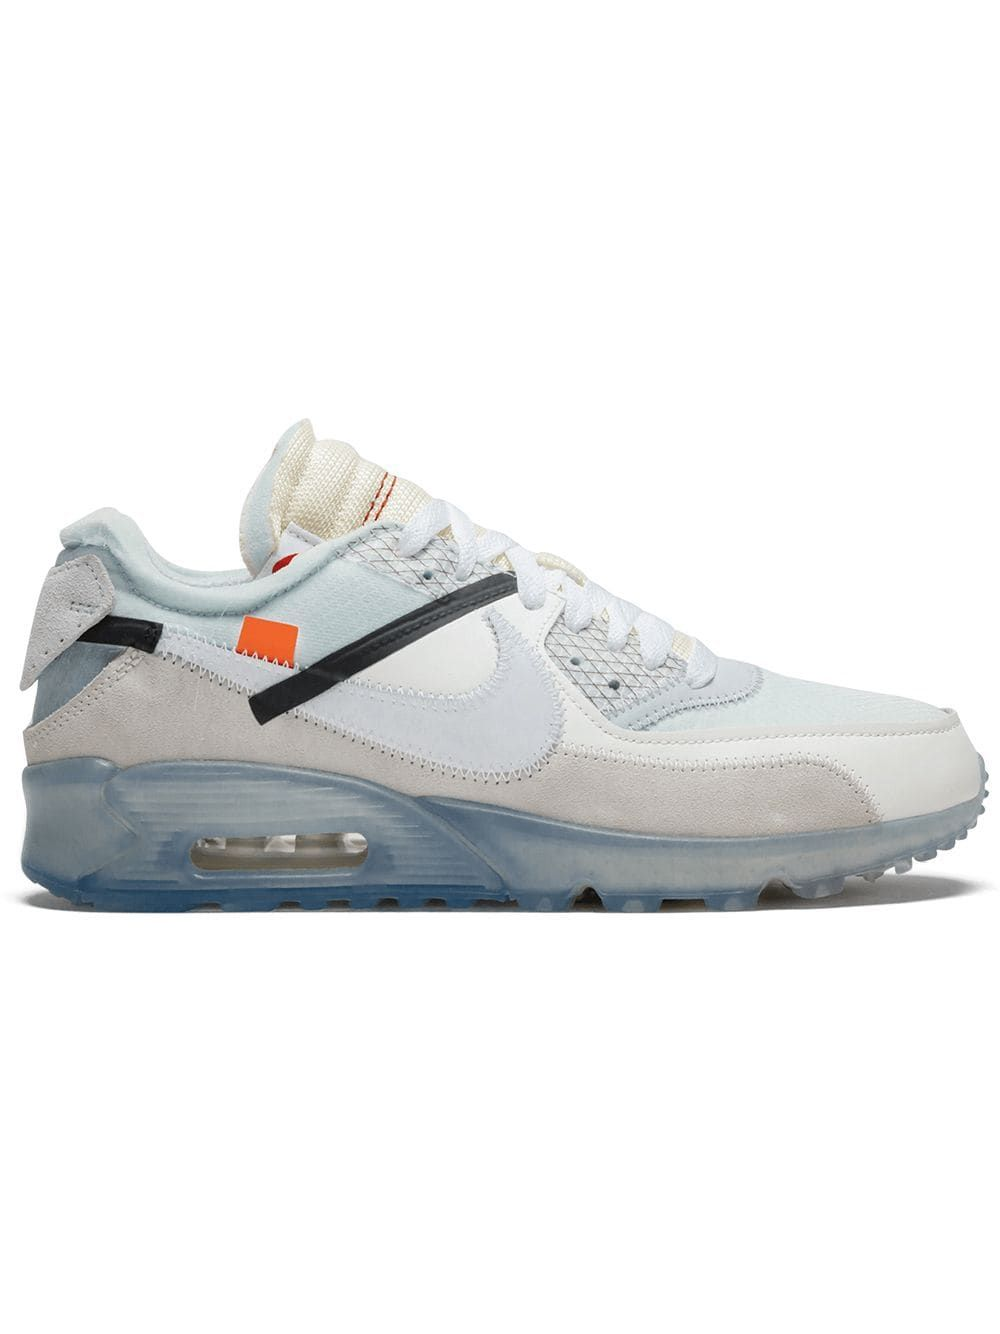 x Off White The 10 Air Max 90 sneakers